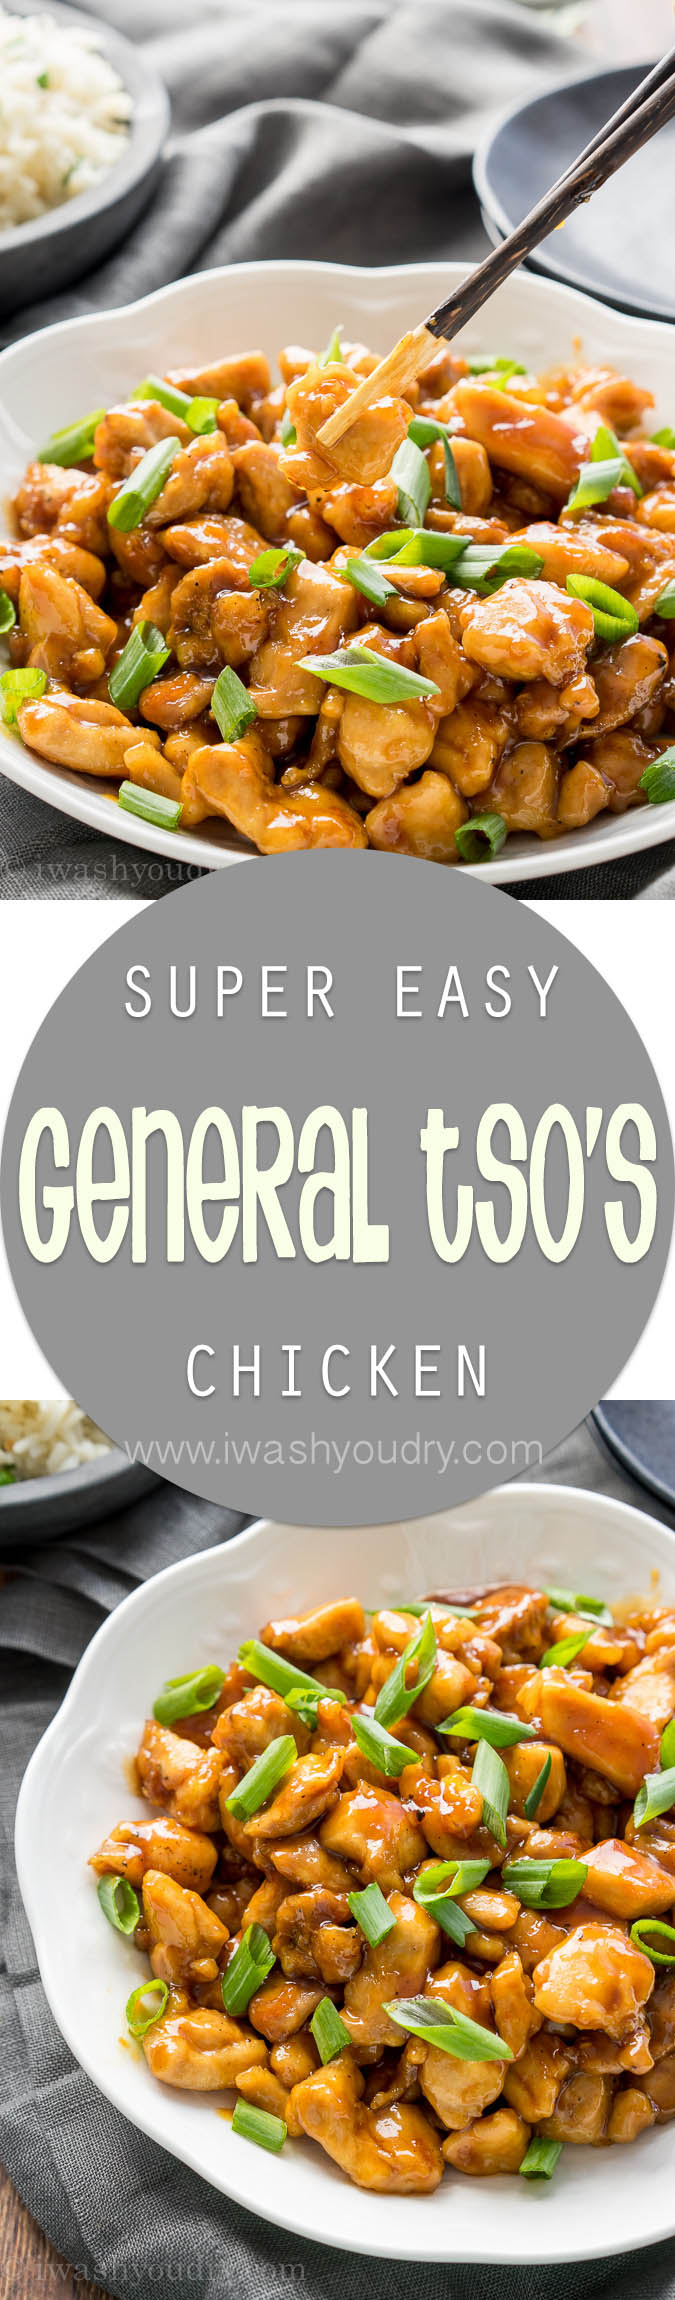 I love this simple and easy General Tso's Chicken recipe! So good!